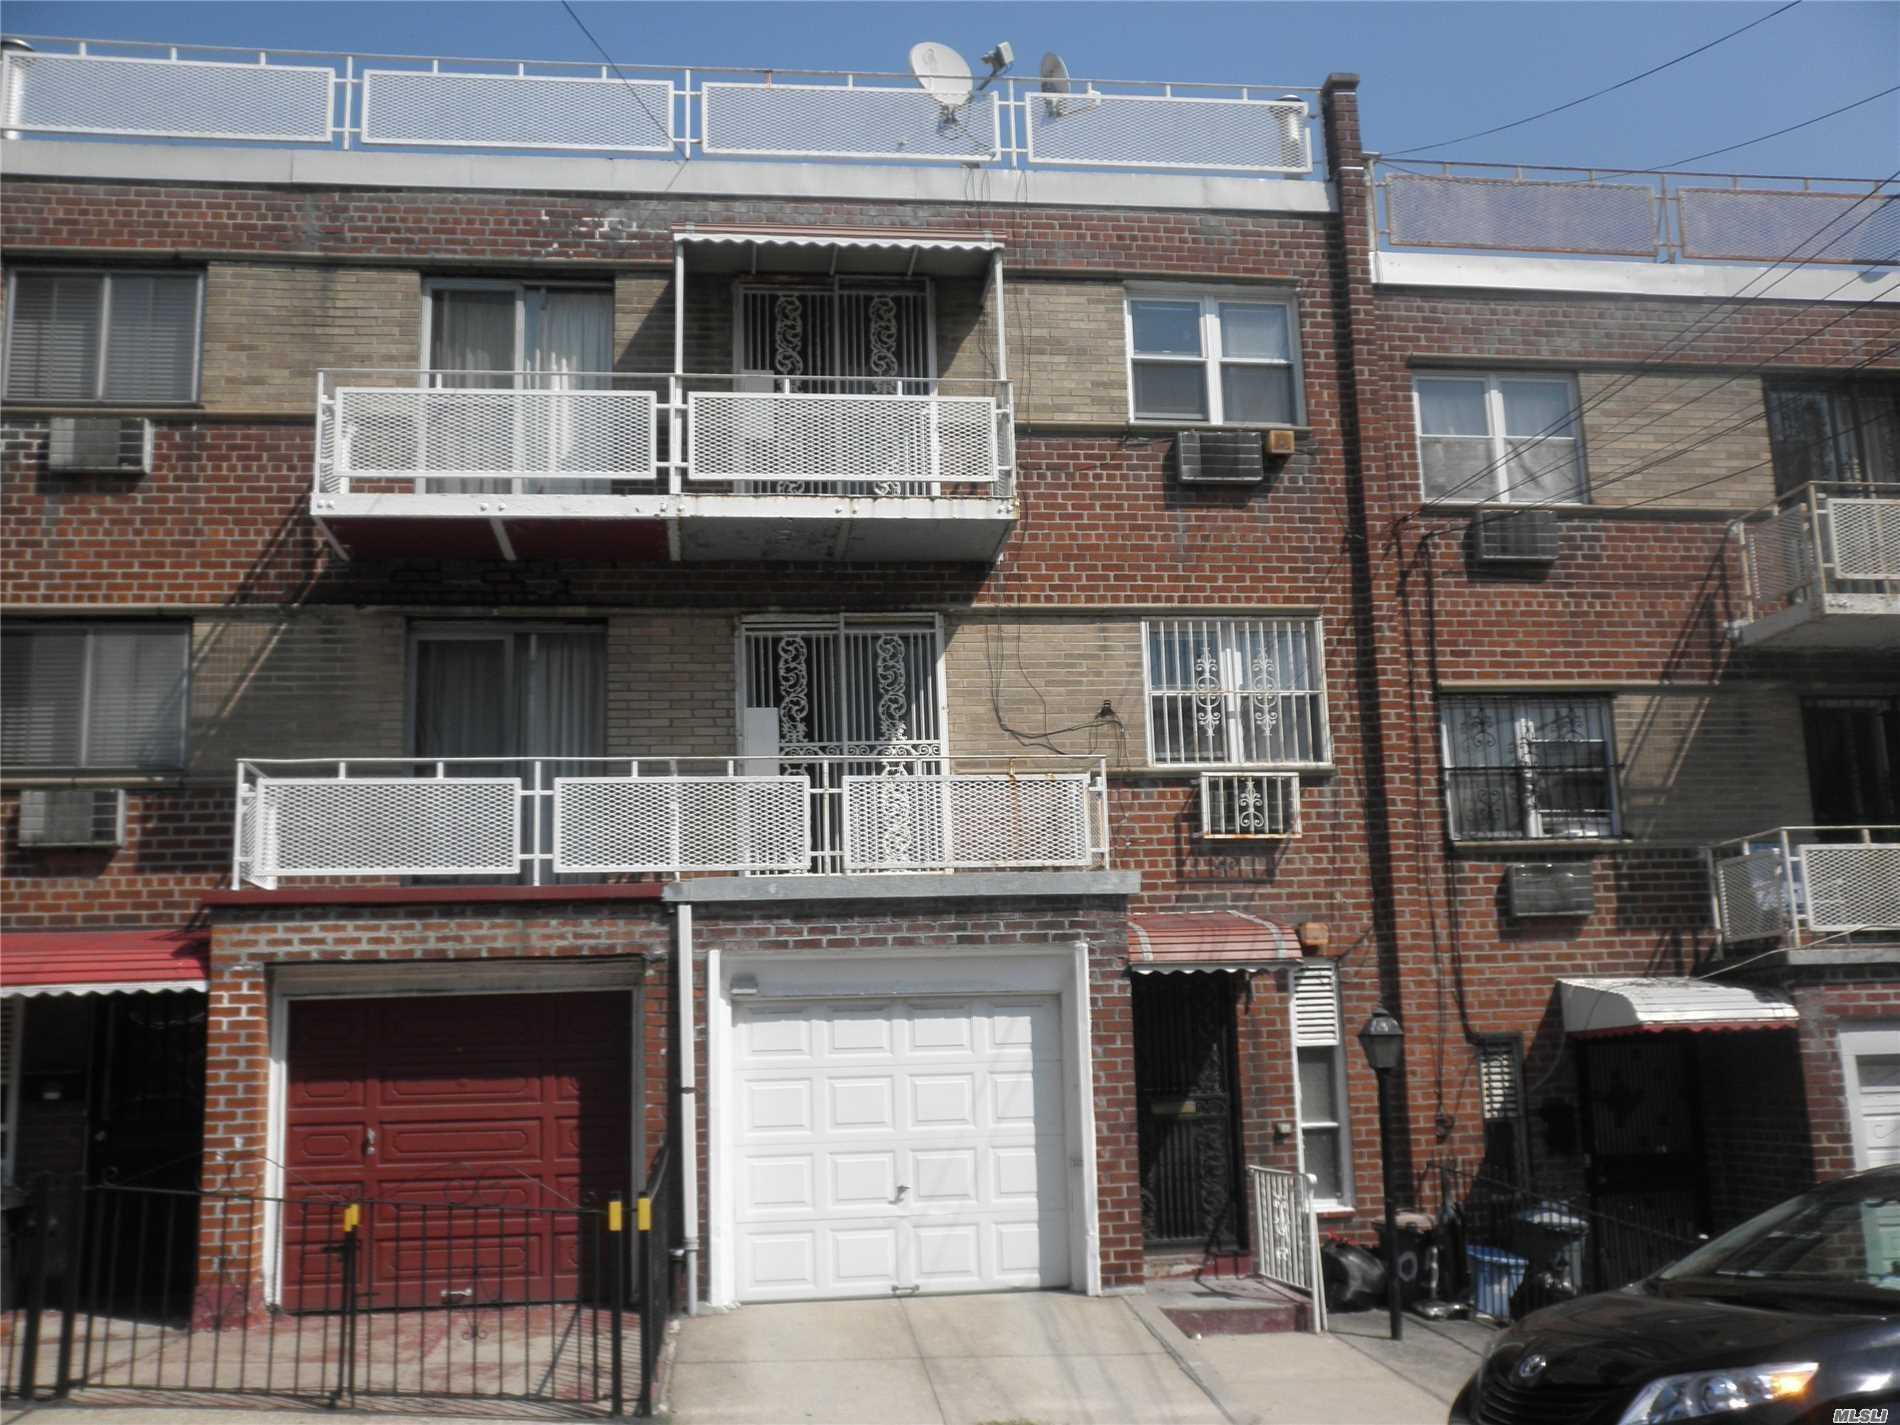 All Brick Legal 2 Family With Great Investment Opportunity, Whole House Can Be Vacant At Closing !! R5 Zoning, Best Elmhurst Location, Conveniently Located Minutes From #7 Train Station, Walk To Queens Blvd & Roosevelt Ave.